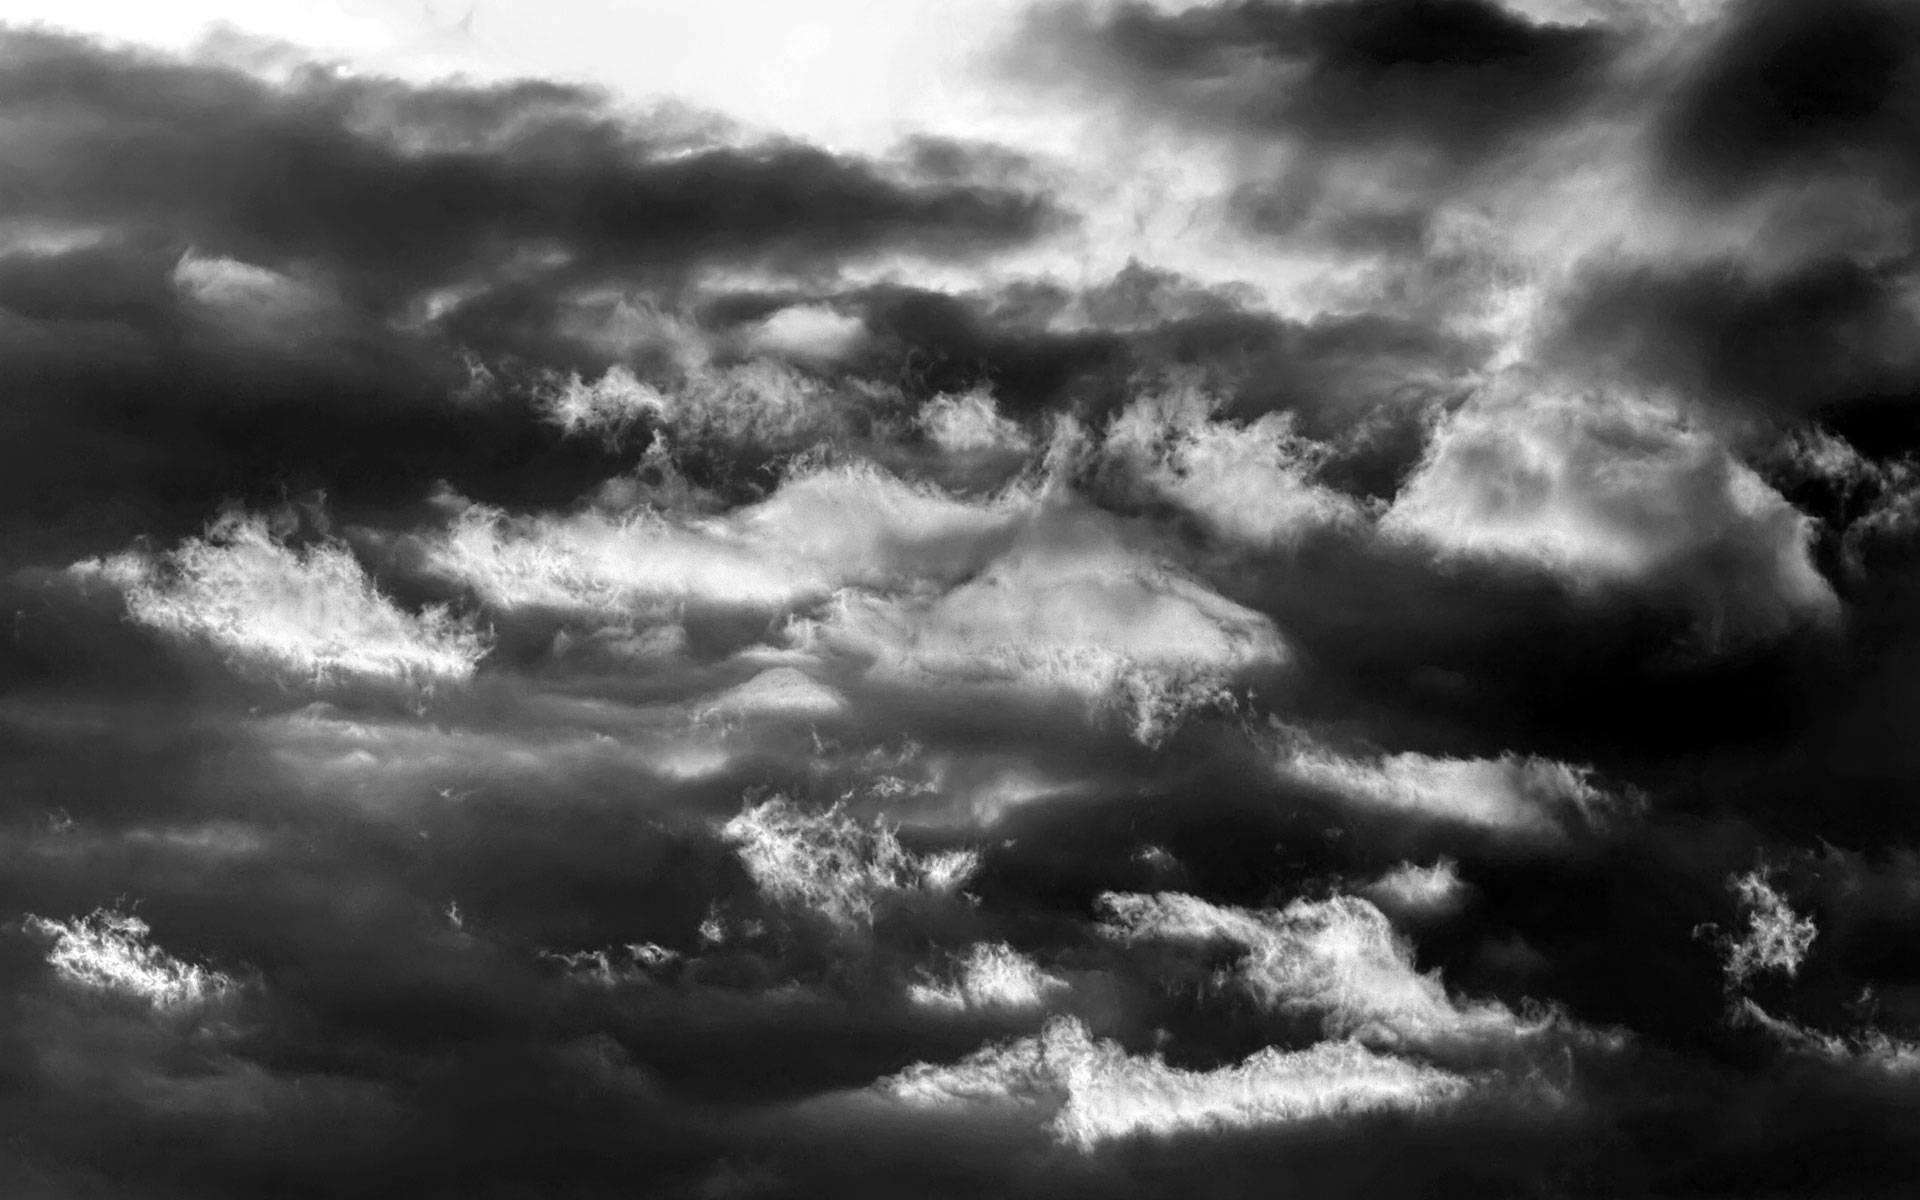 Ocean Storm Clouds Not Sure What This Is Referring To Fresh New Hd Wallpaper